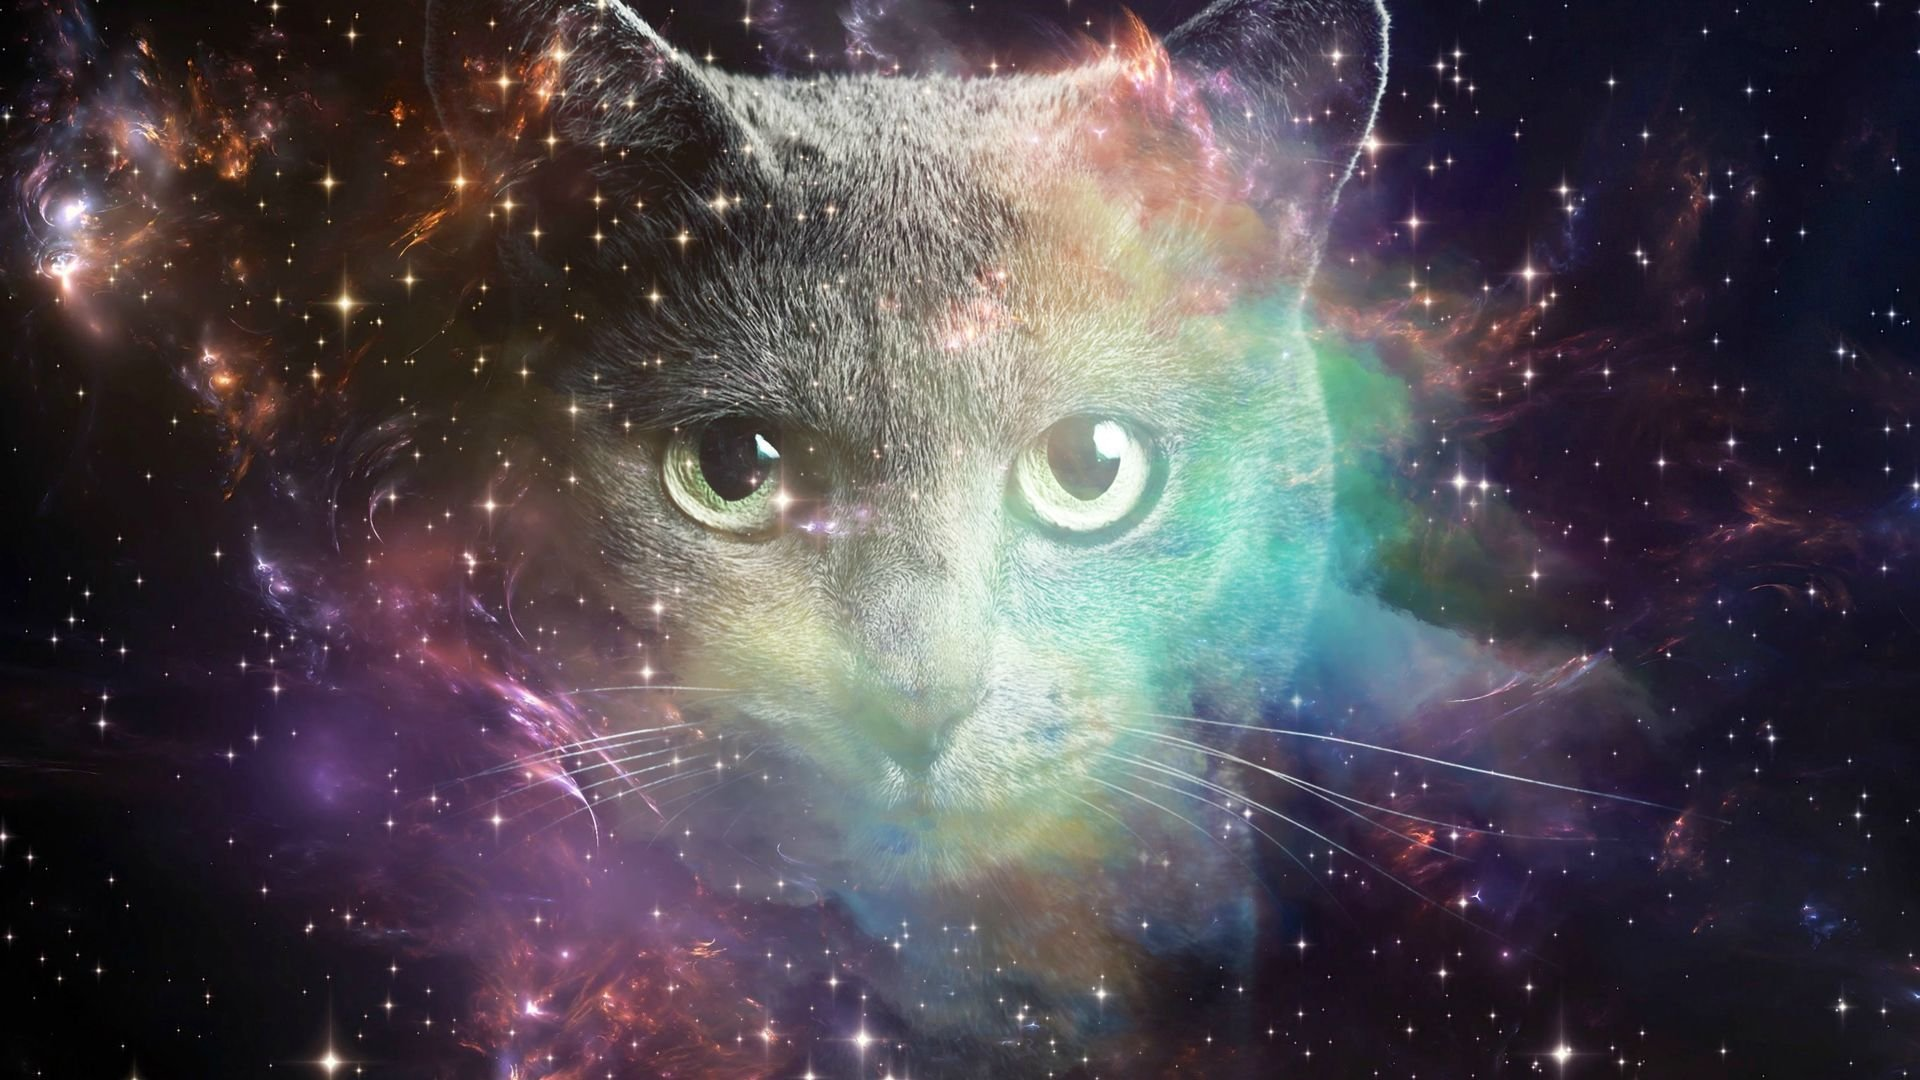 Cats in space wallpaper ipad